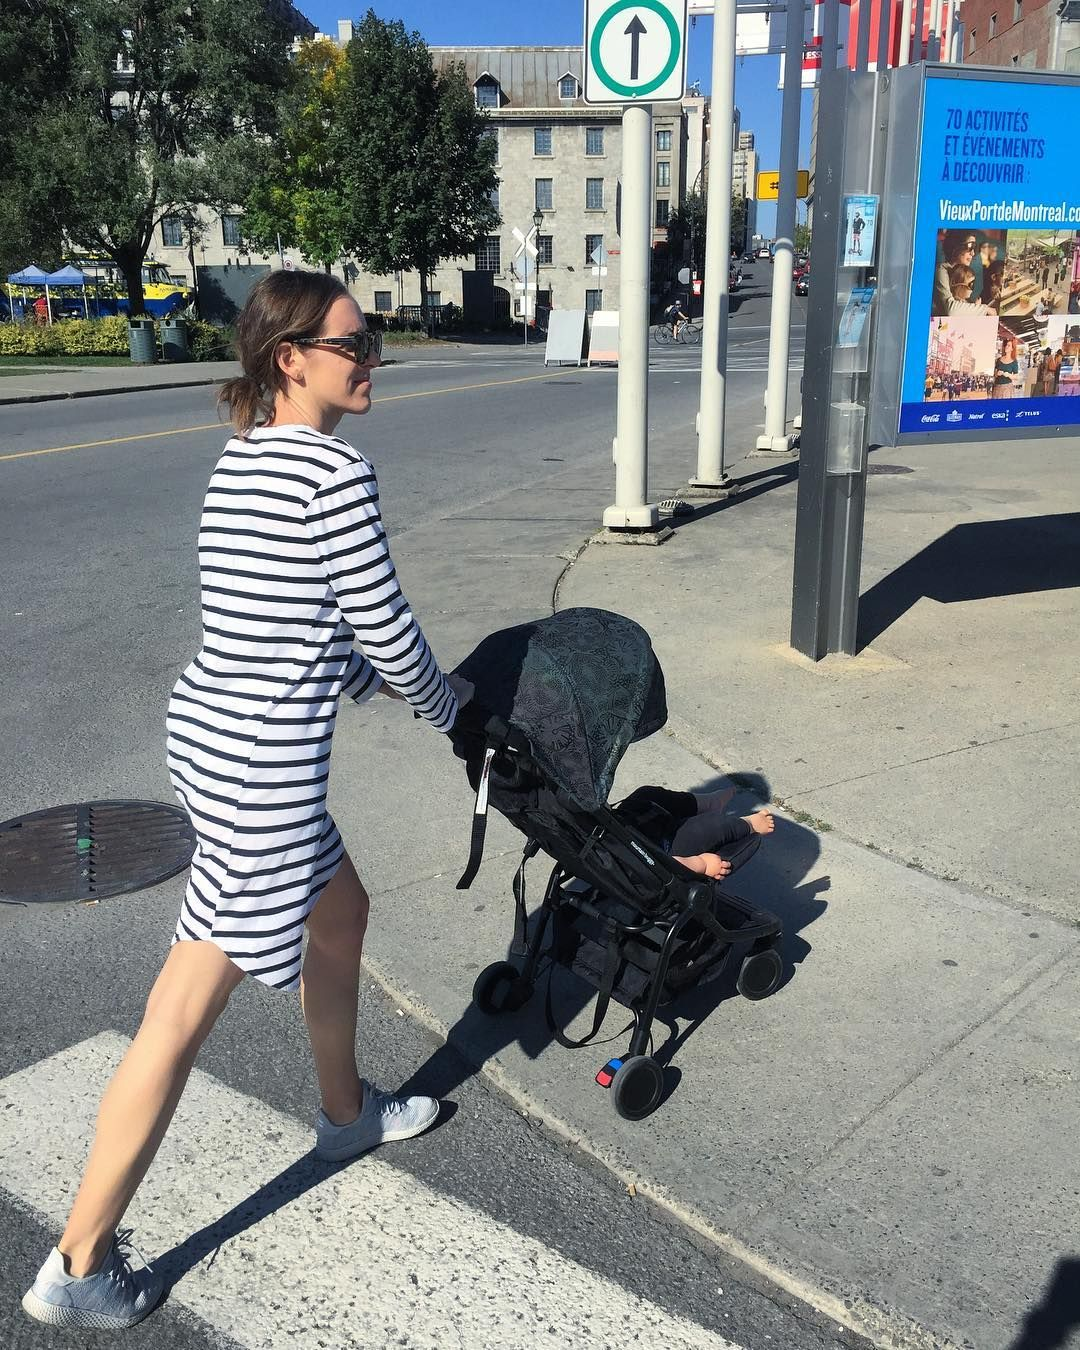 Strolling the streets of Canada, on holiday with nano Year